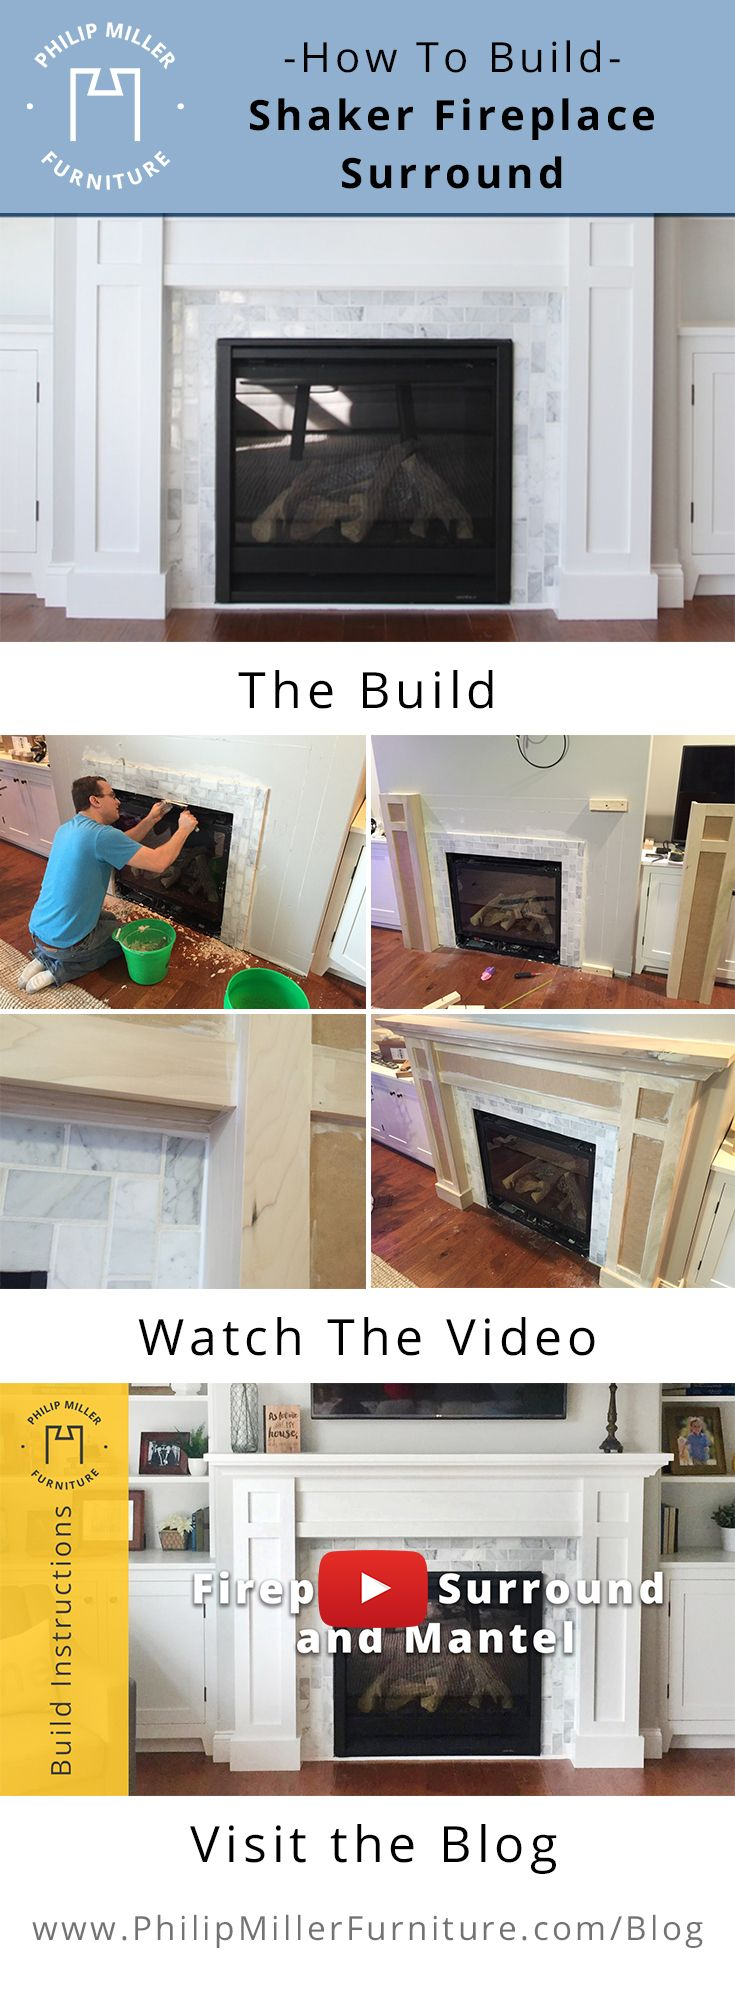 Shaker Fireplace Beautiful How to Build A Shaker Fireplace Mantel and Surround